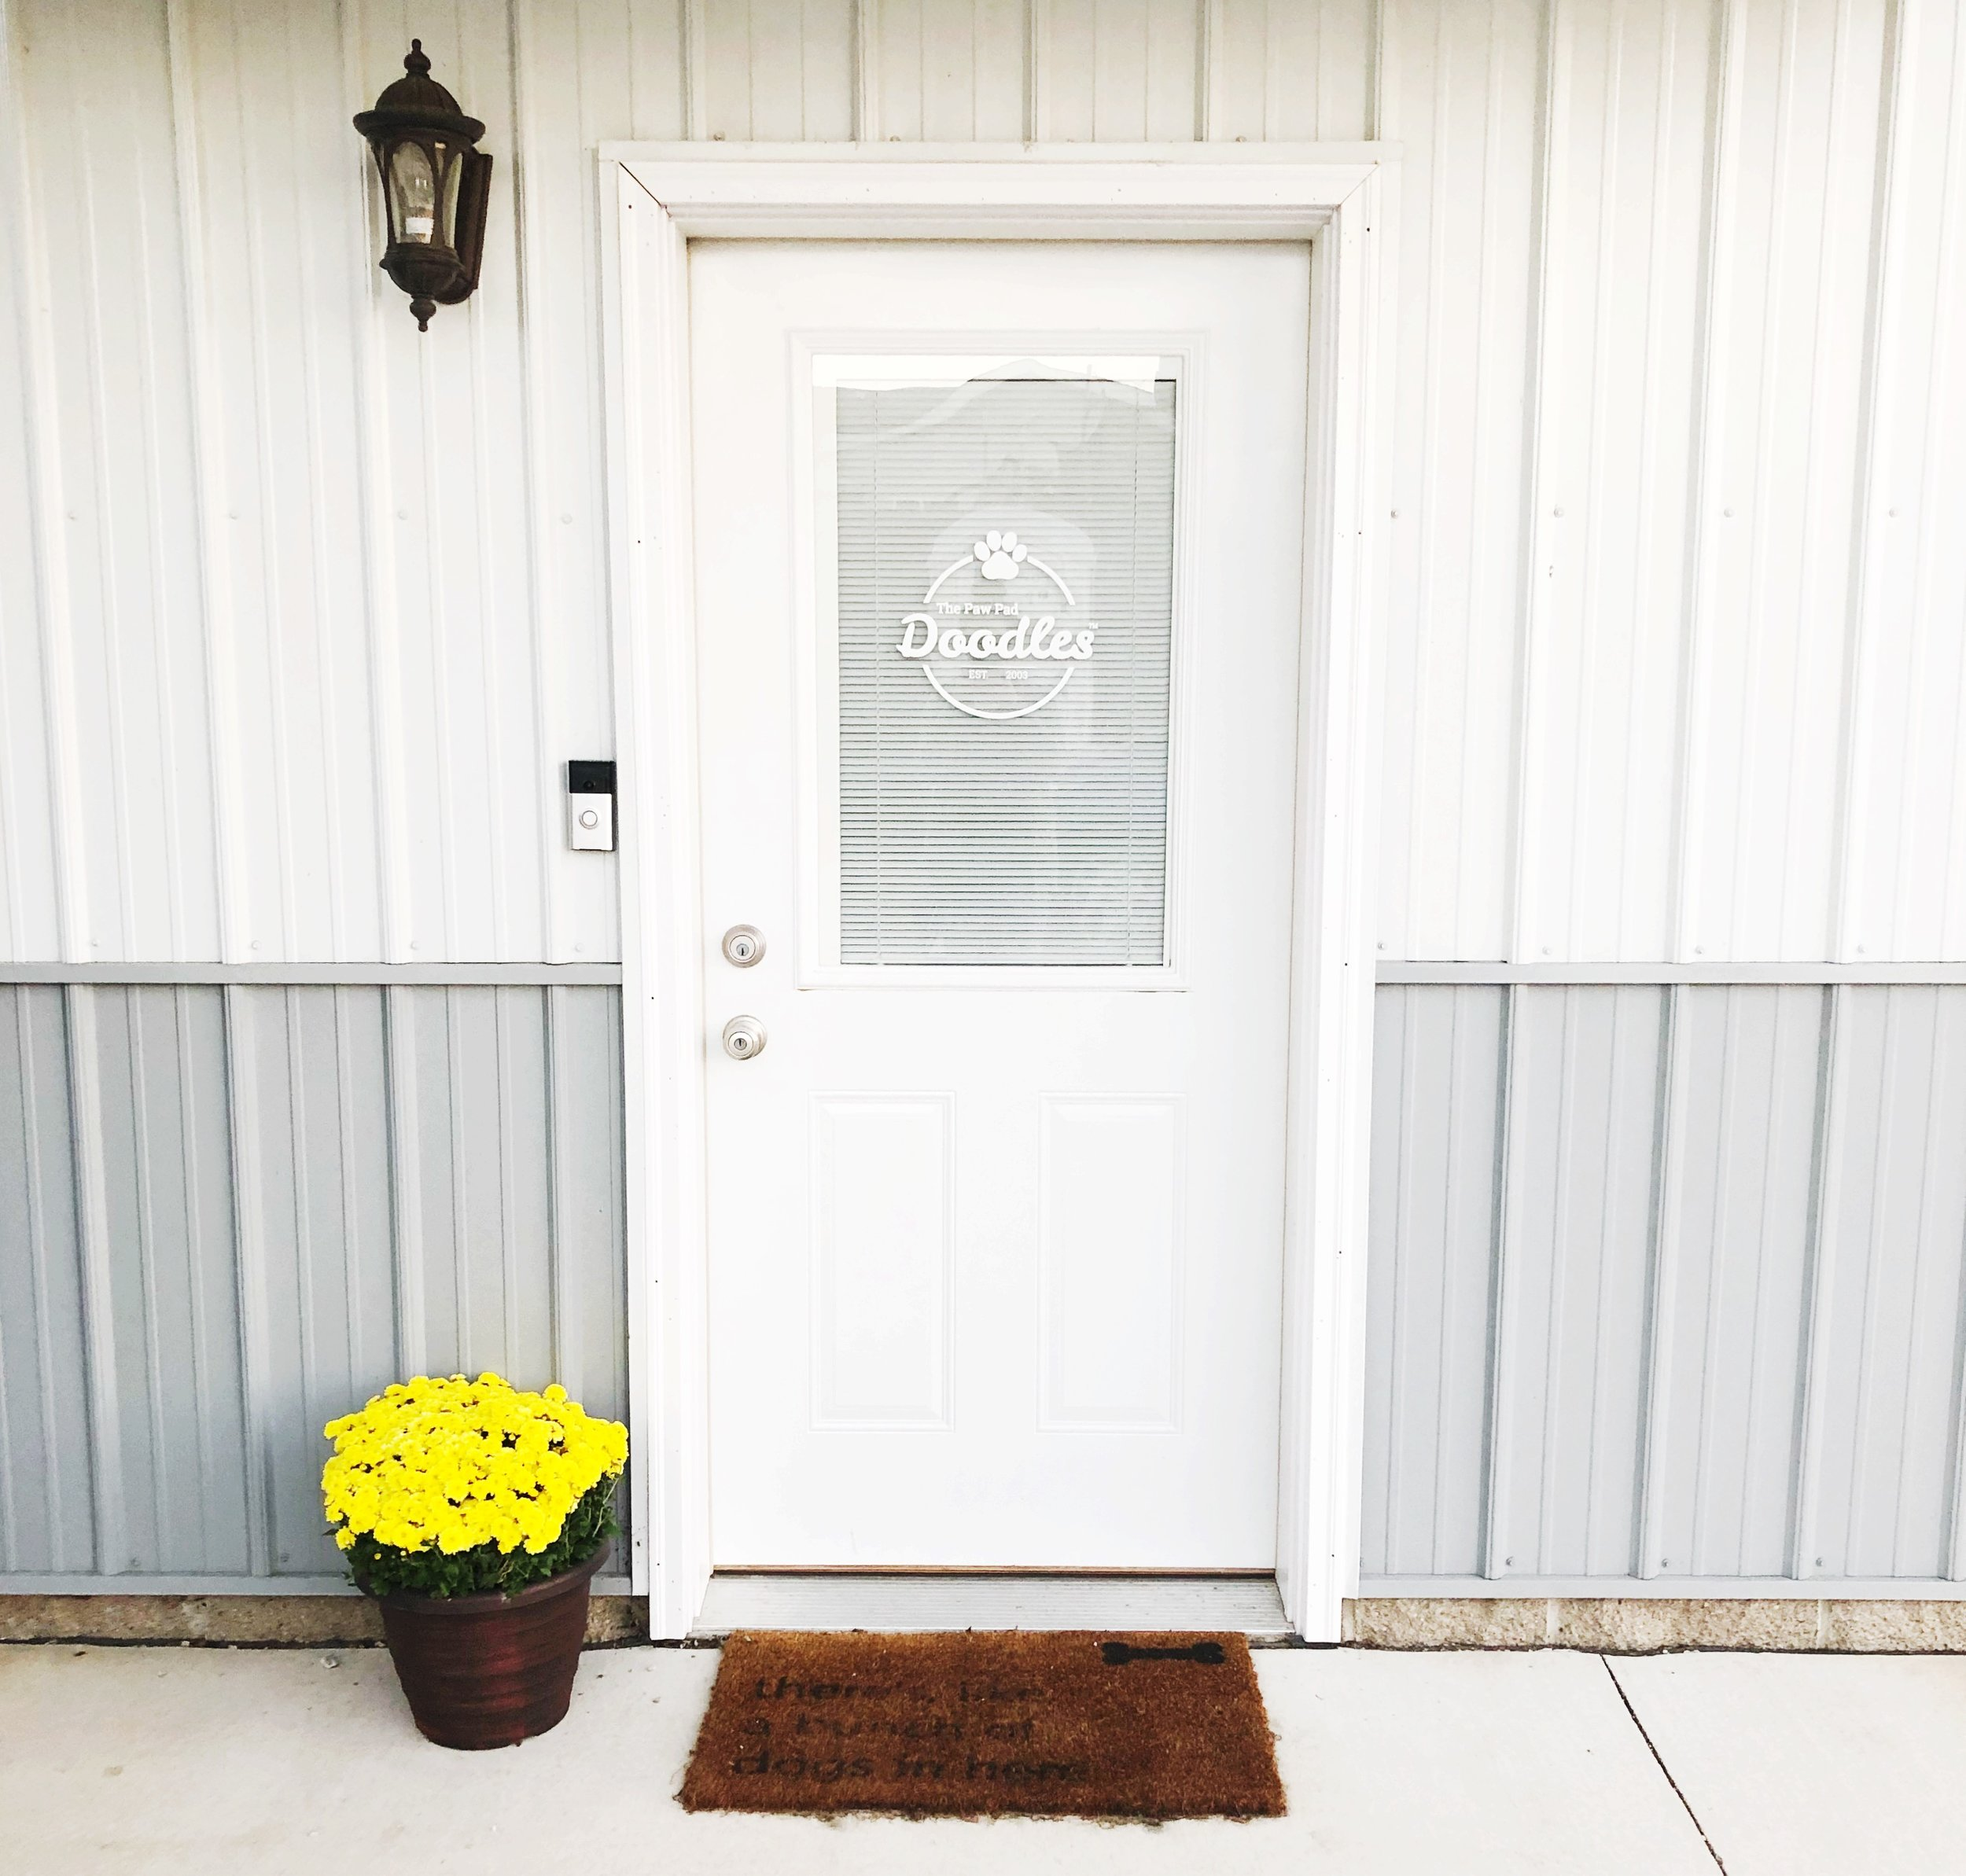 Please ring the doorbell when you arrive for your appointment.